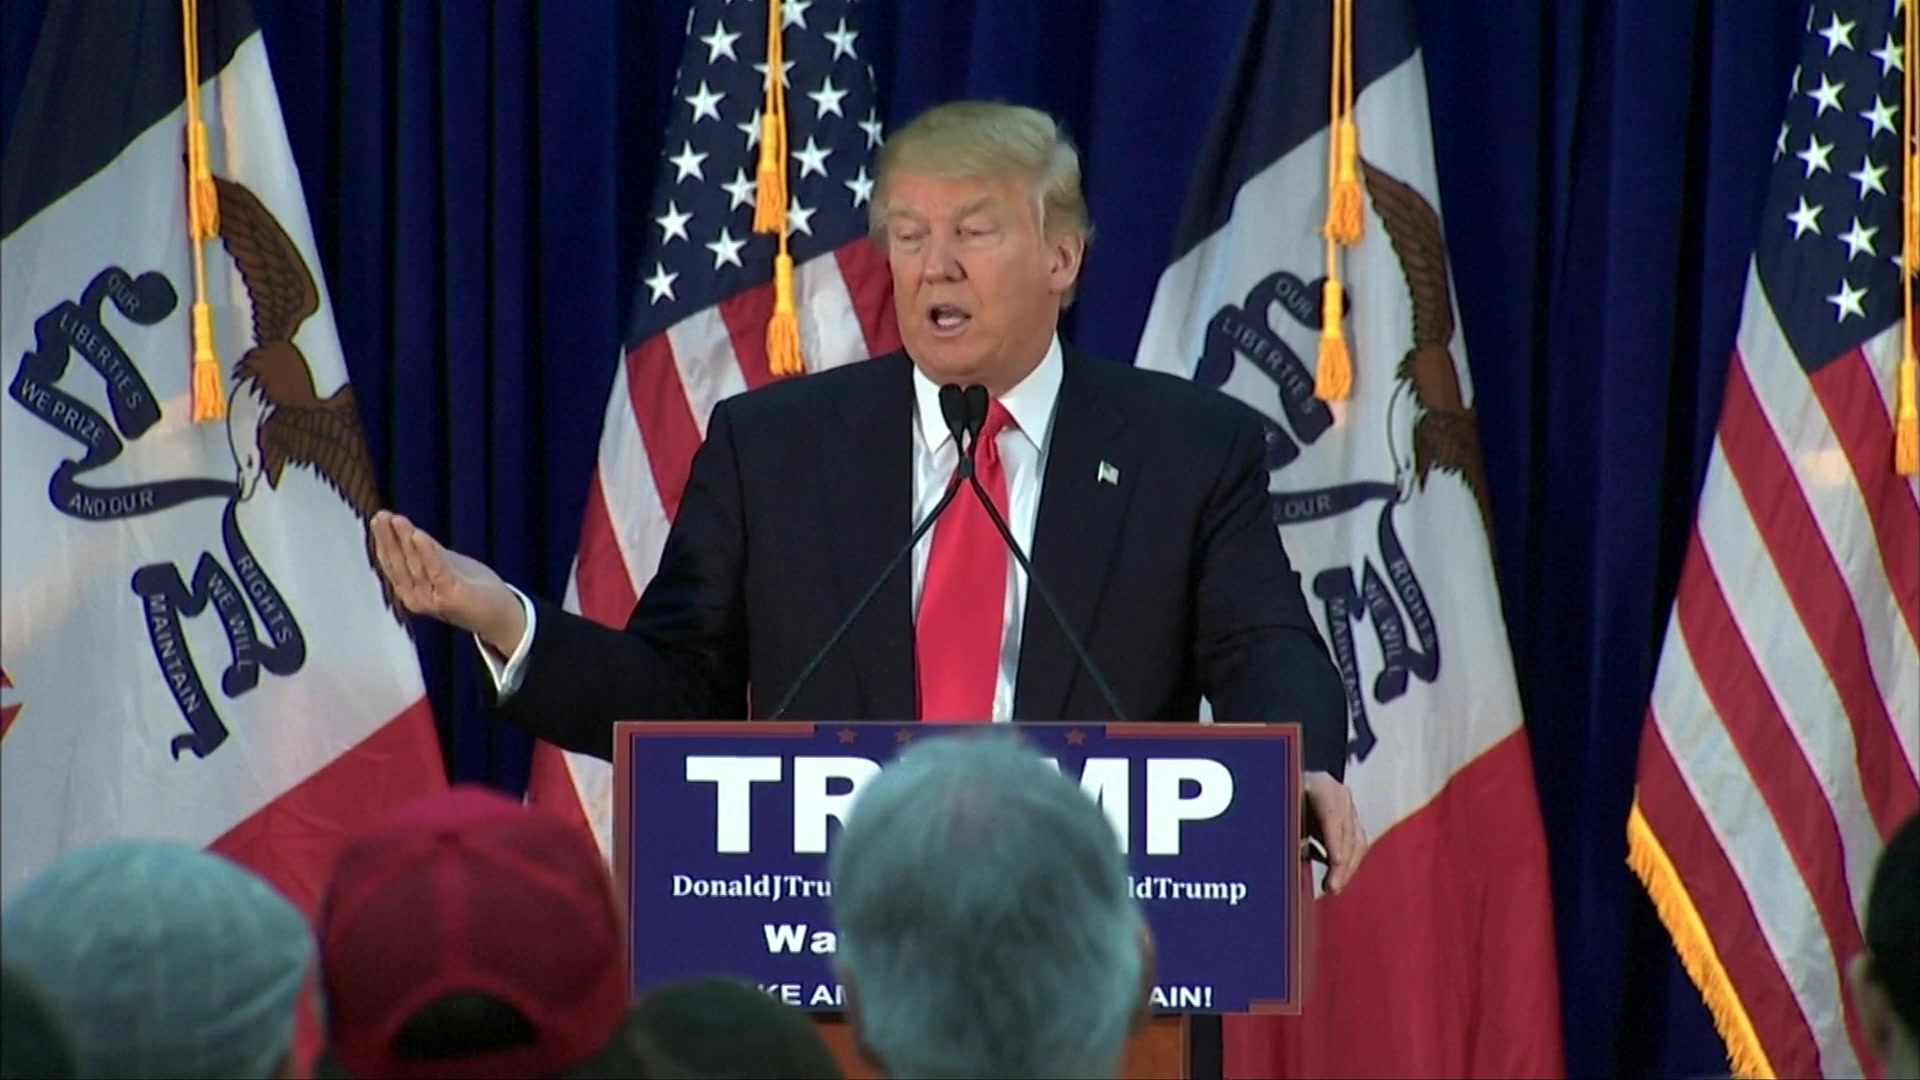 Trump Targets Cruz on Ethanol in Iowa